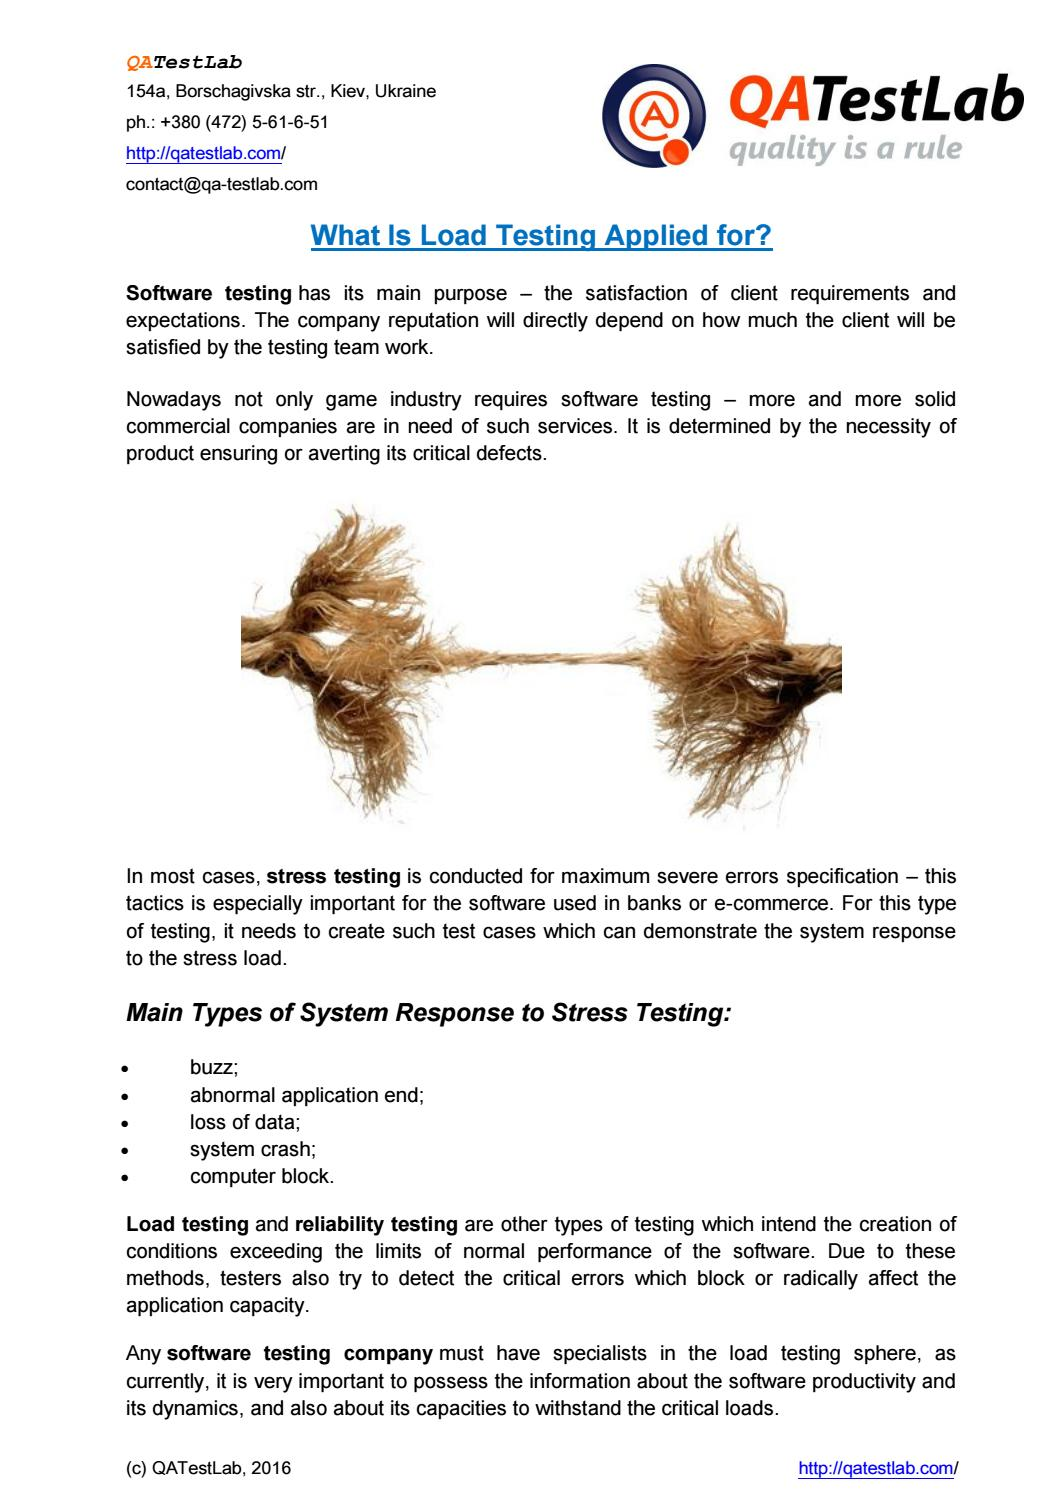 What is Load Testing Applied for? by QATestLab - issuu